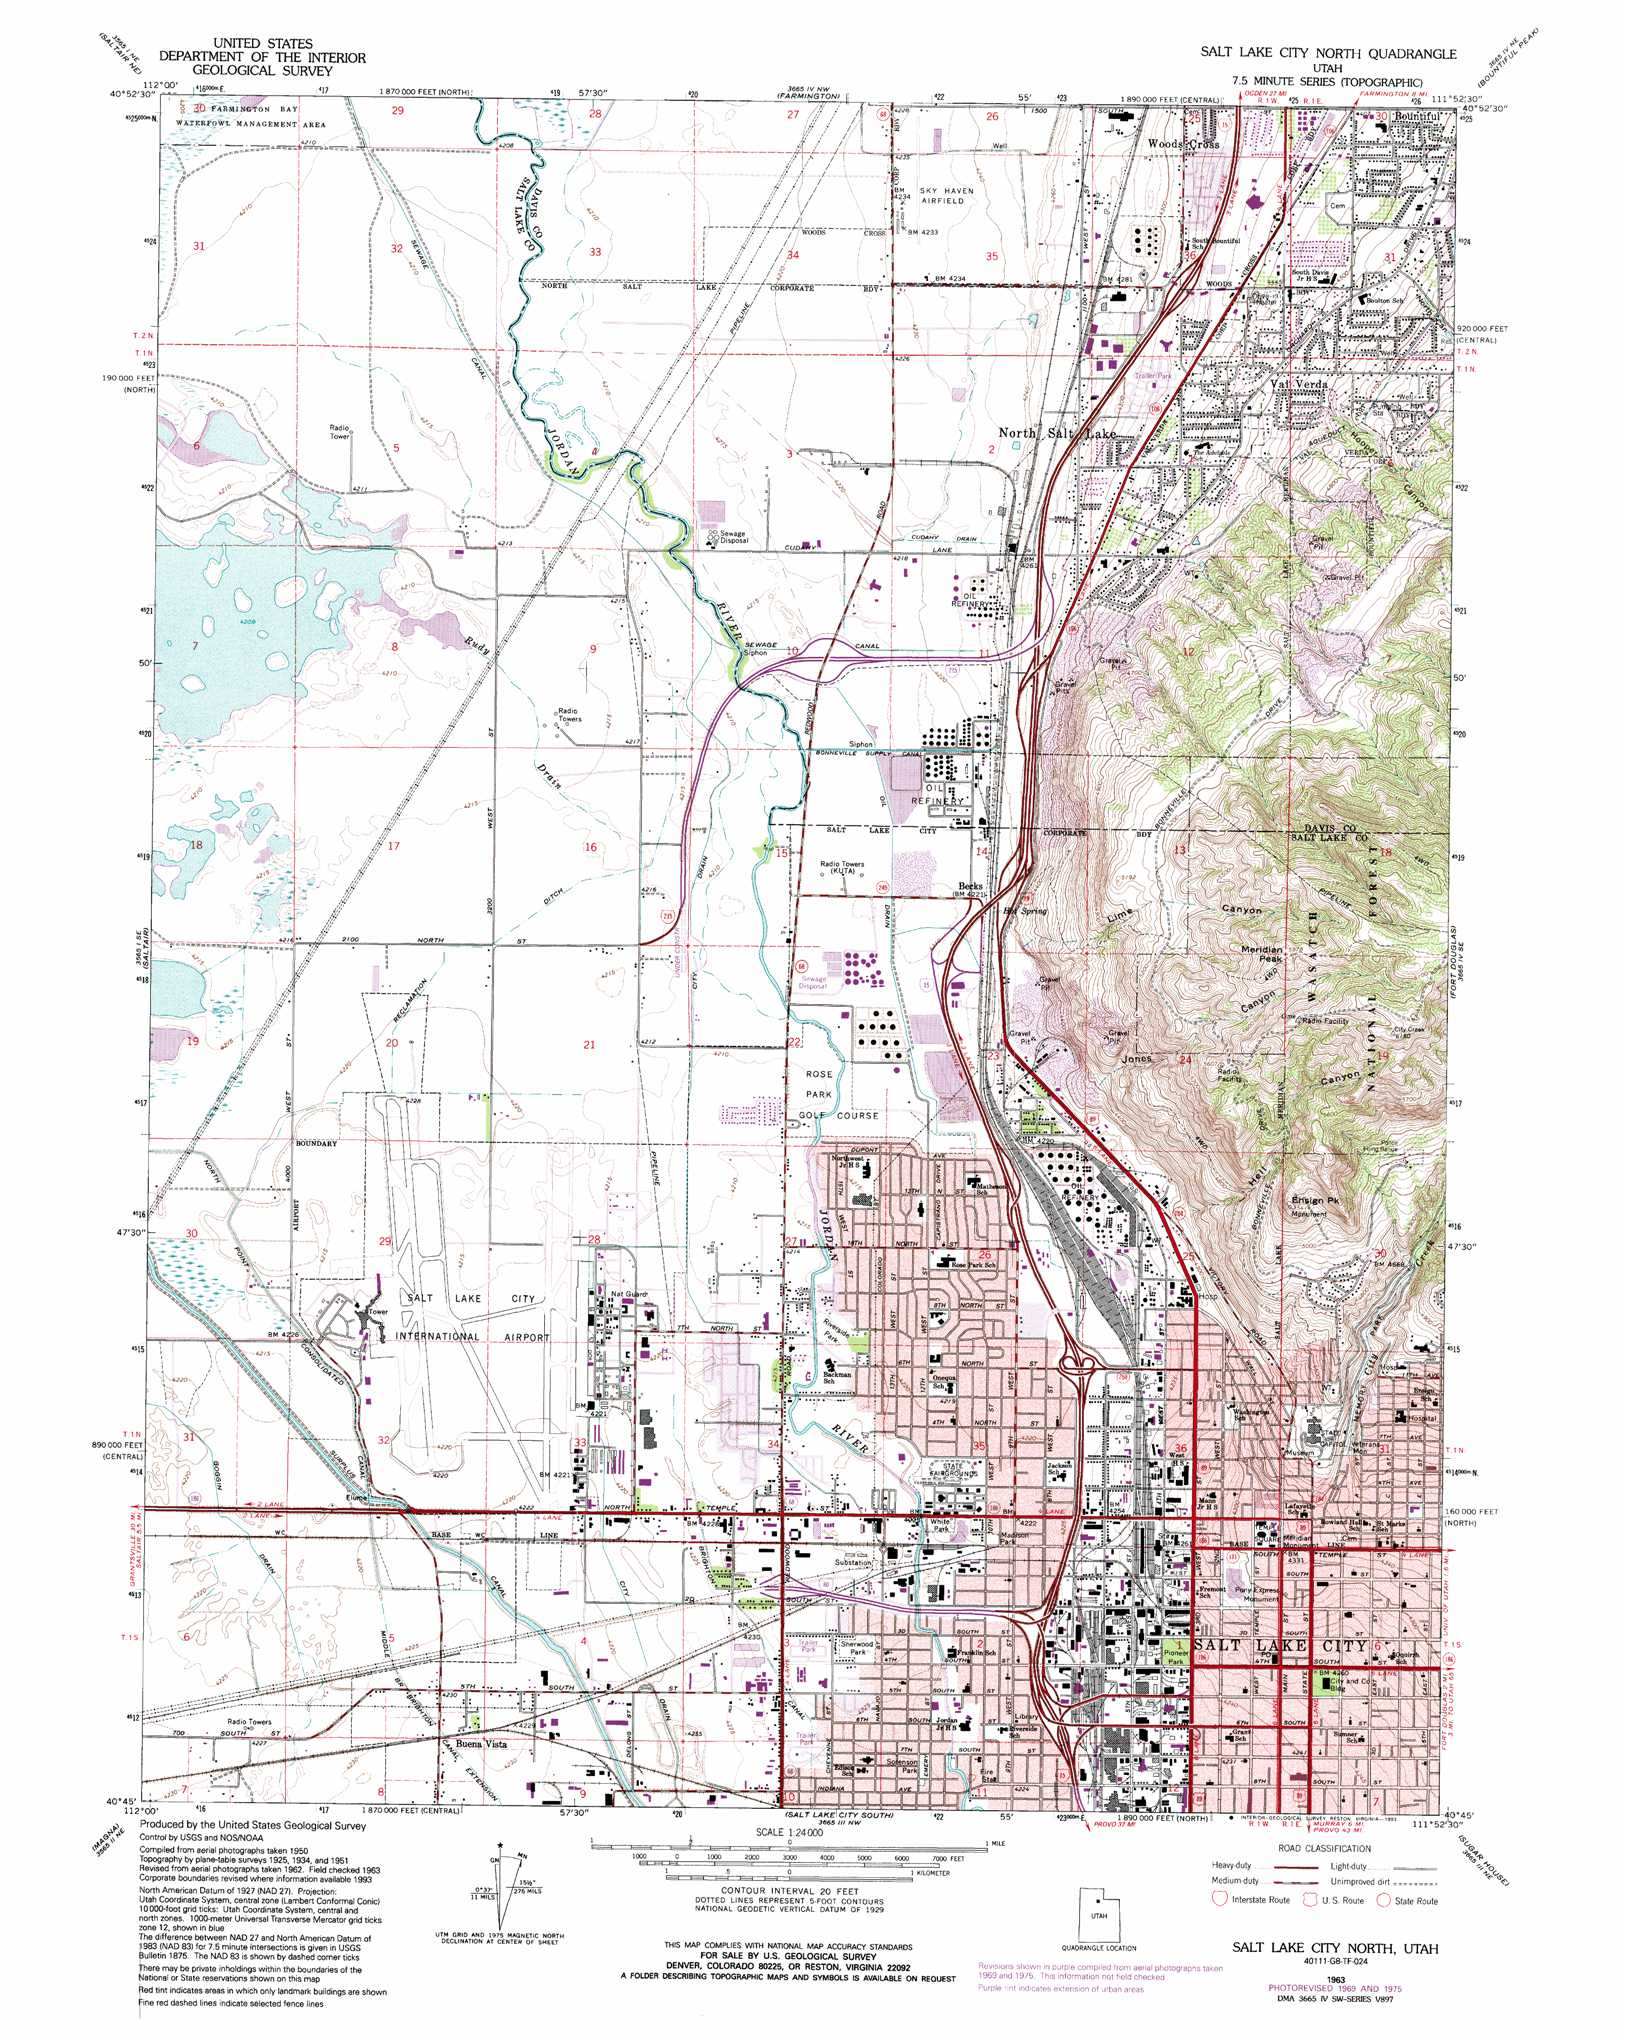 Large Salt Lake City Maps For Free Download And Print High Great - Great salt lake us map